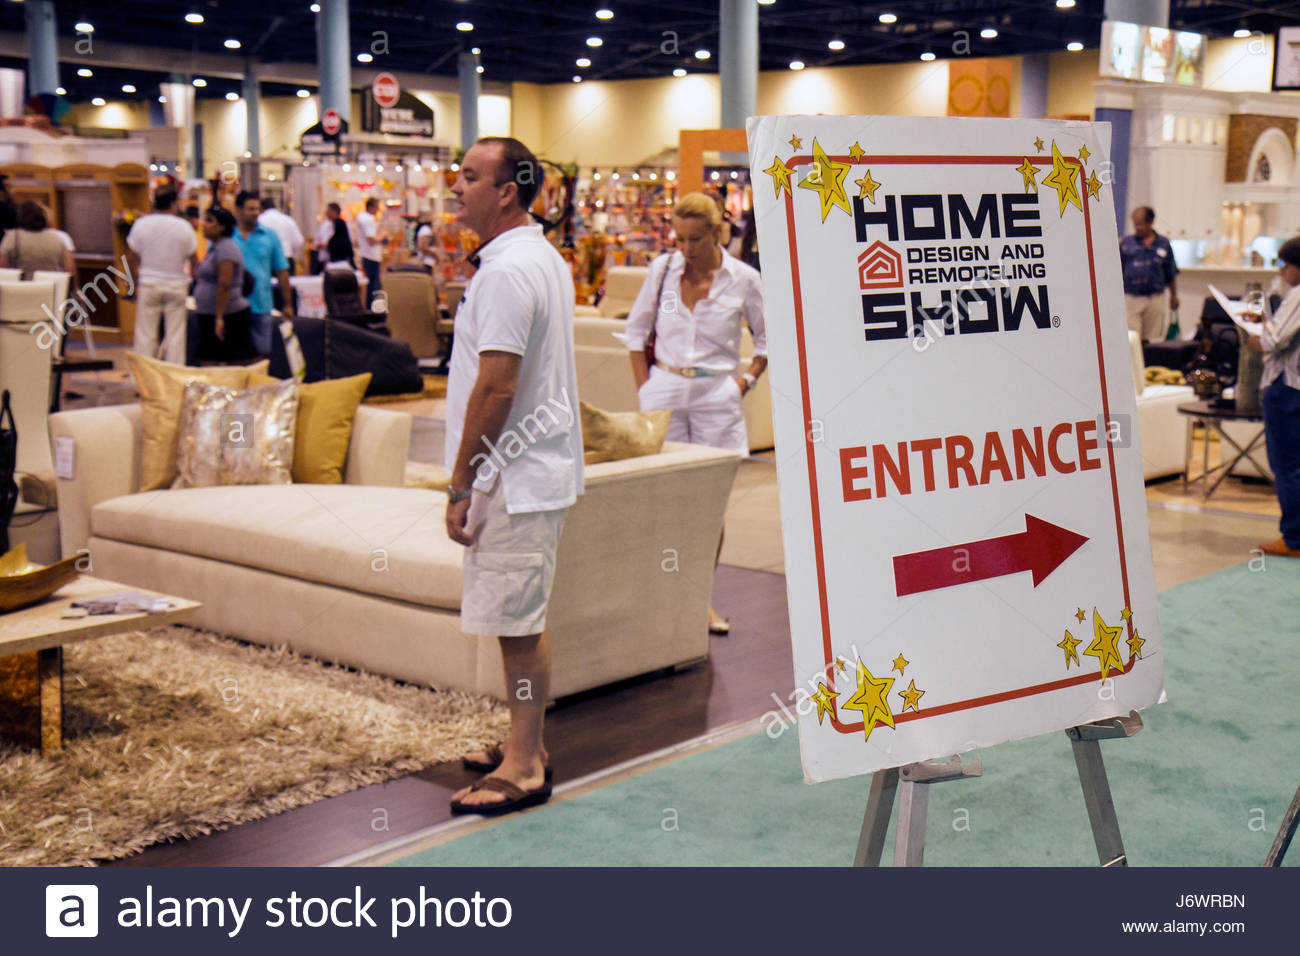 buyers and sellers stock photos buyers and sellers stock images miami beach miami florida beach convention center home design and remodeling show buyers sellers exhibitors